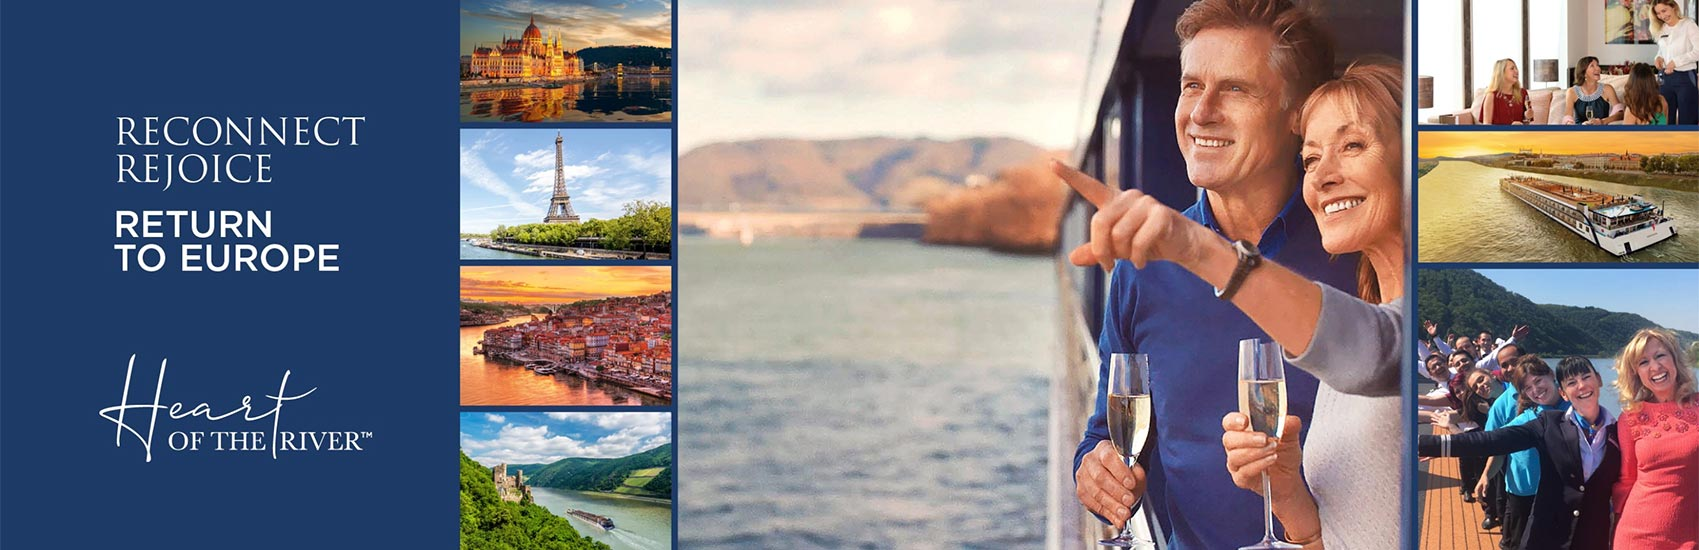 Return to Europe Savings Offer with AmaWaterways